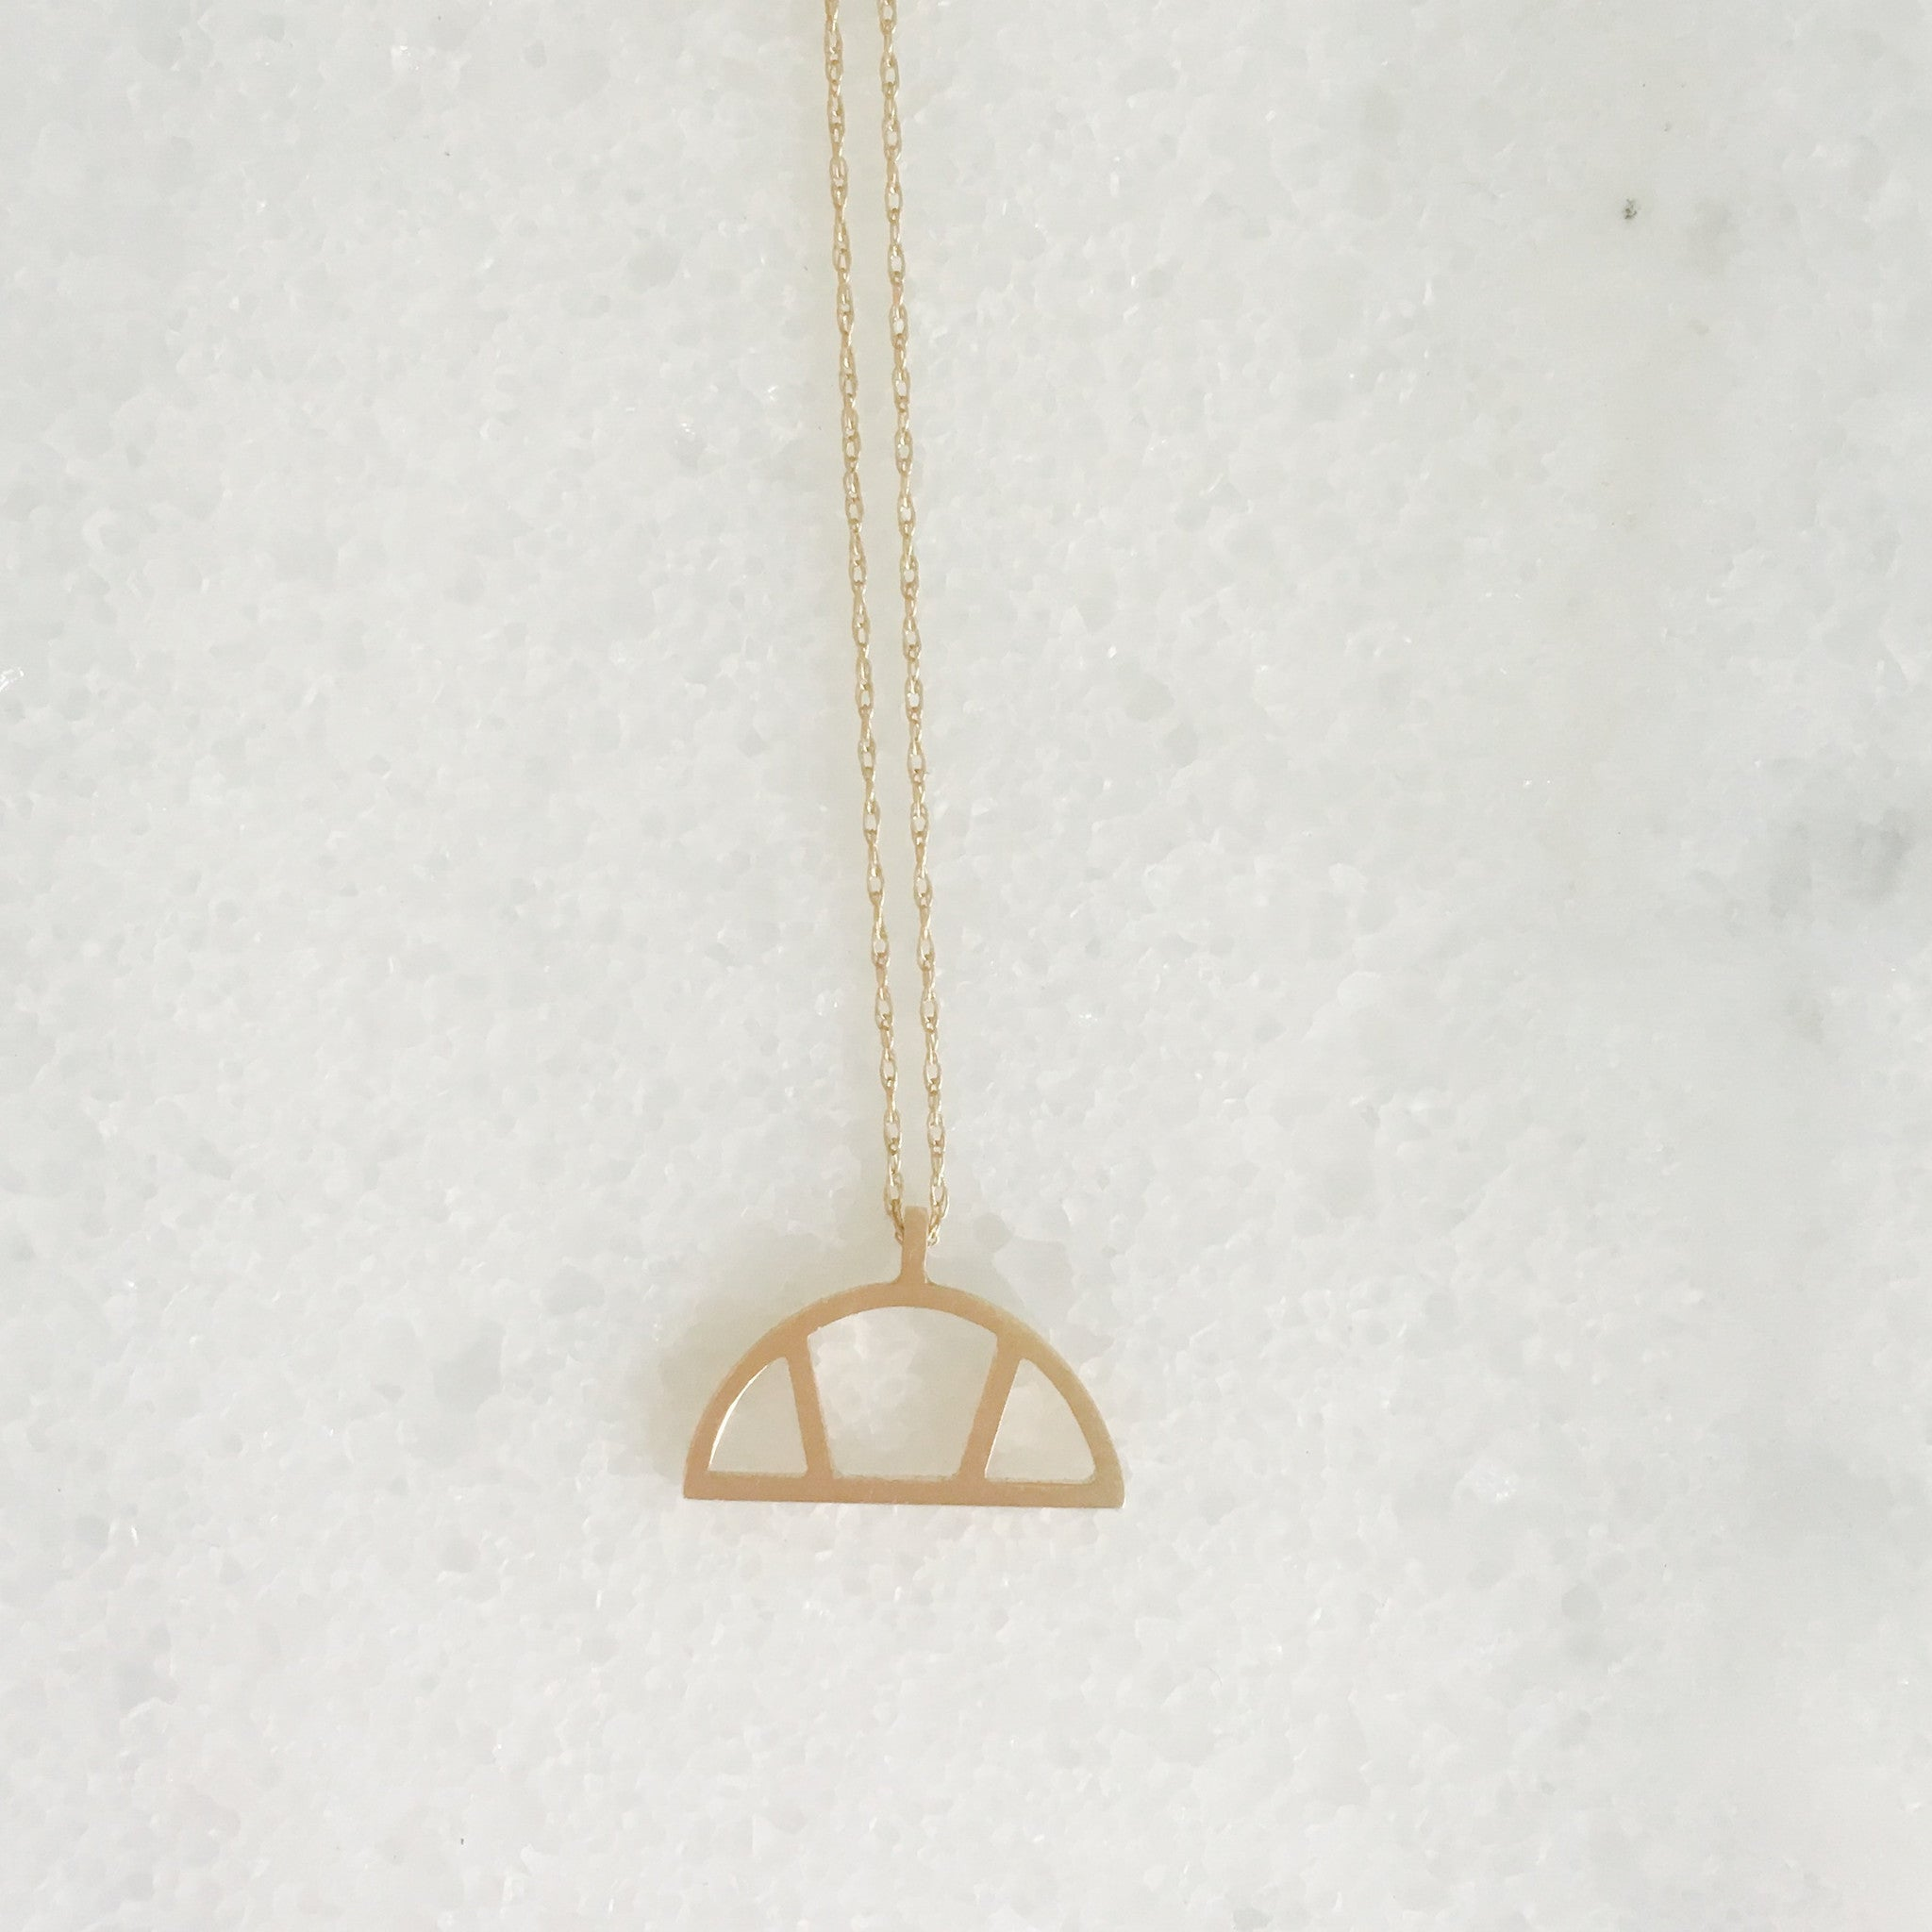 Sunroom™ Necklace